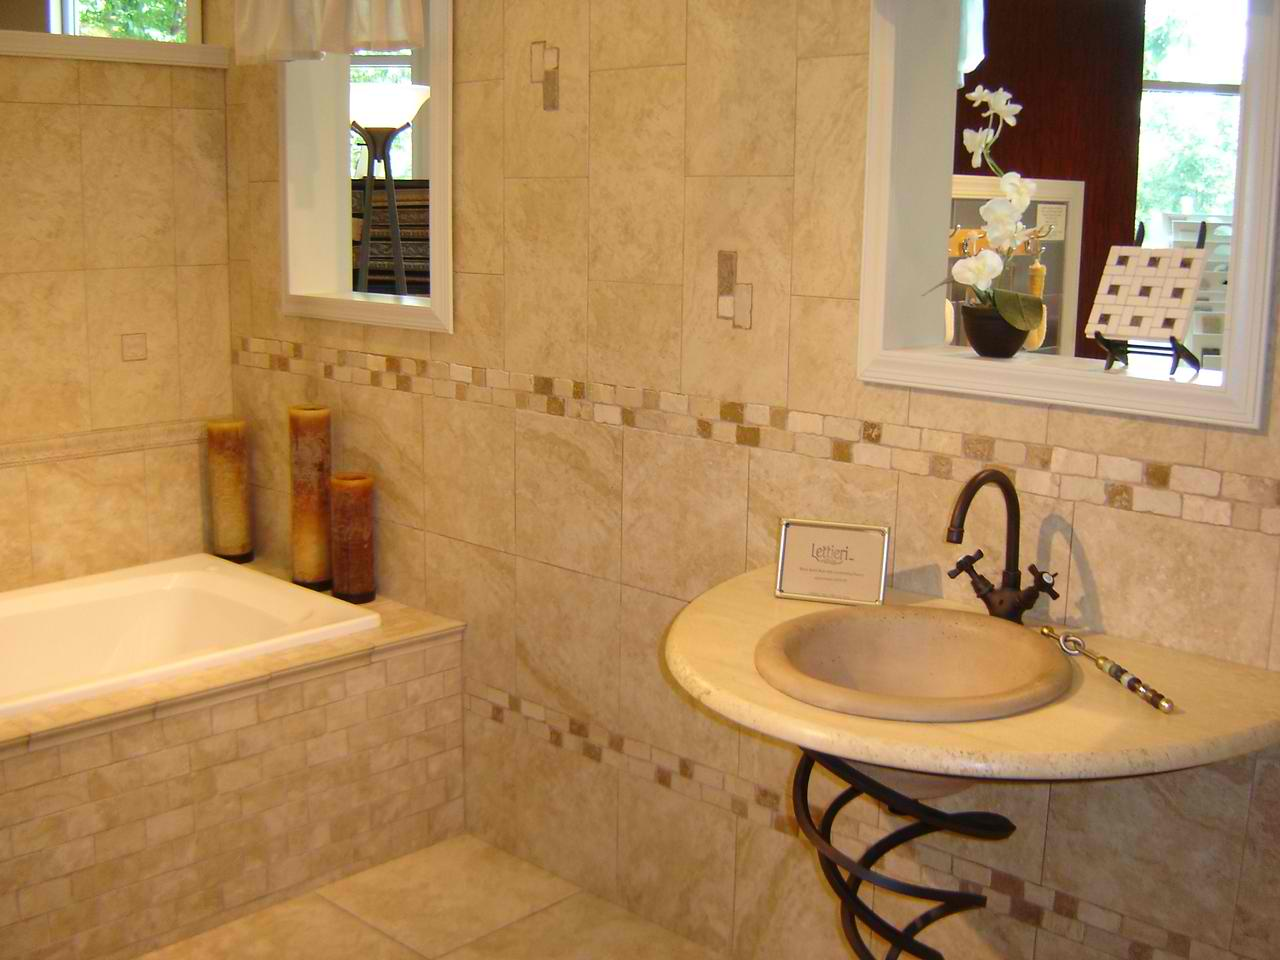 30 Great Pictures And Ideas Of Neutral Bathroom Tile Designs Ideas